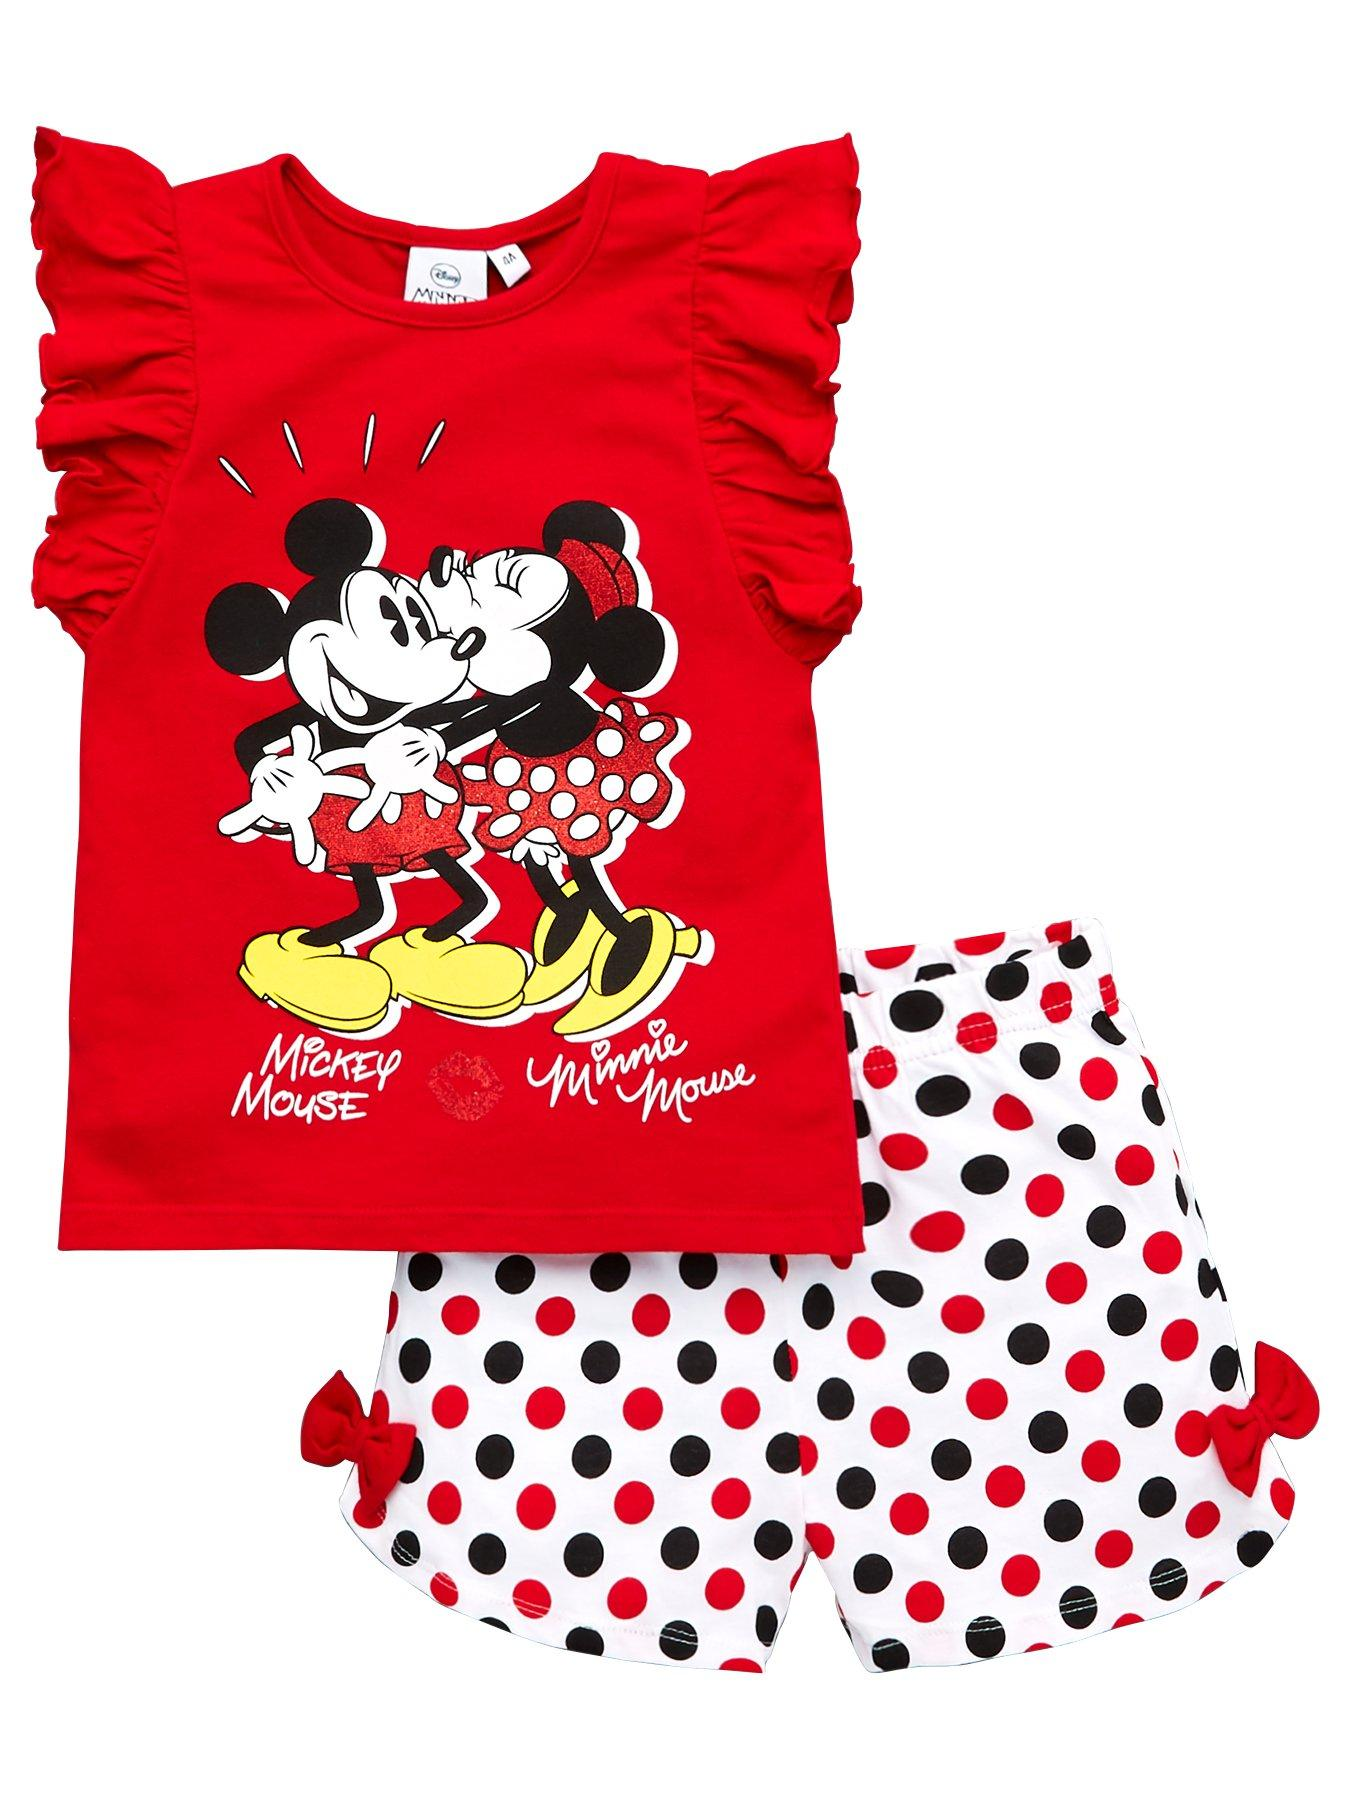 9-12 18-24 MONTHS DRESSING GOWN /& SLIPPERS BABY GIRLS MINNIE MOUSE GIFT SET